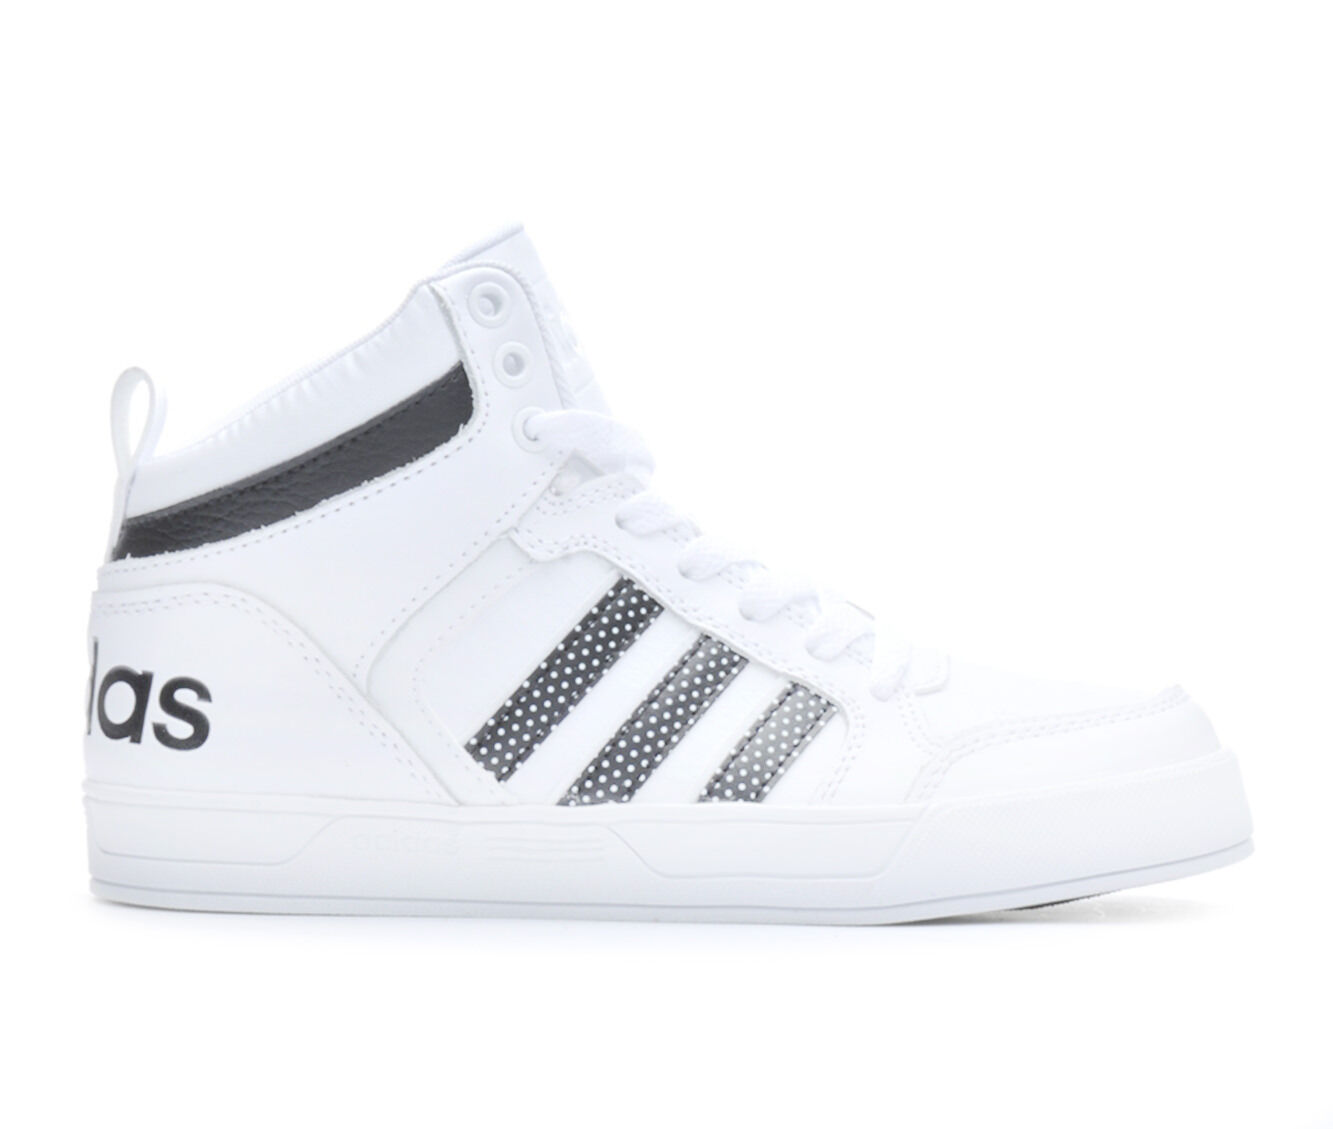 germany adidas neo raleigh high top womens sneaker clogs